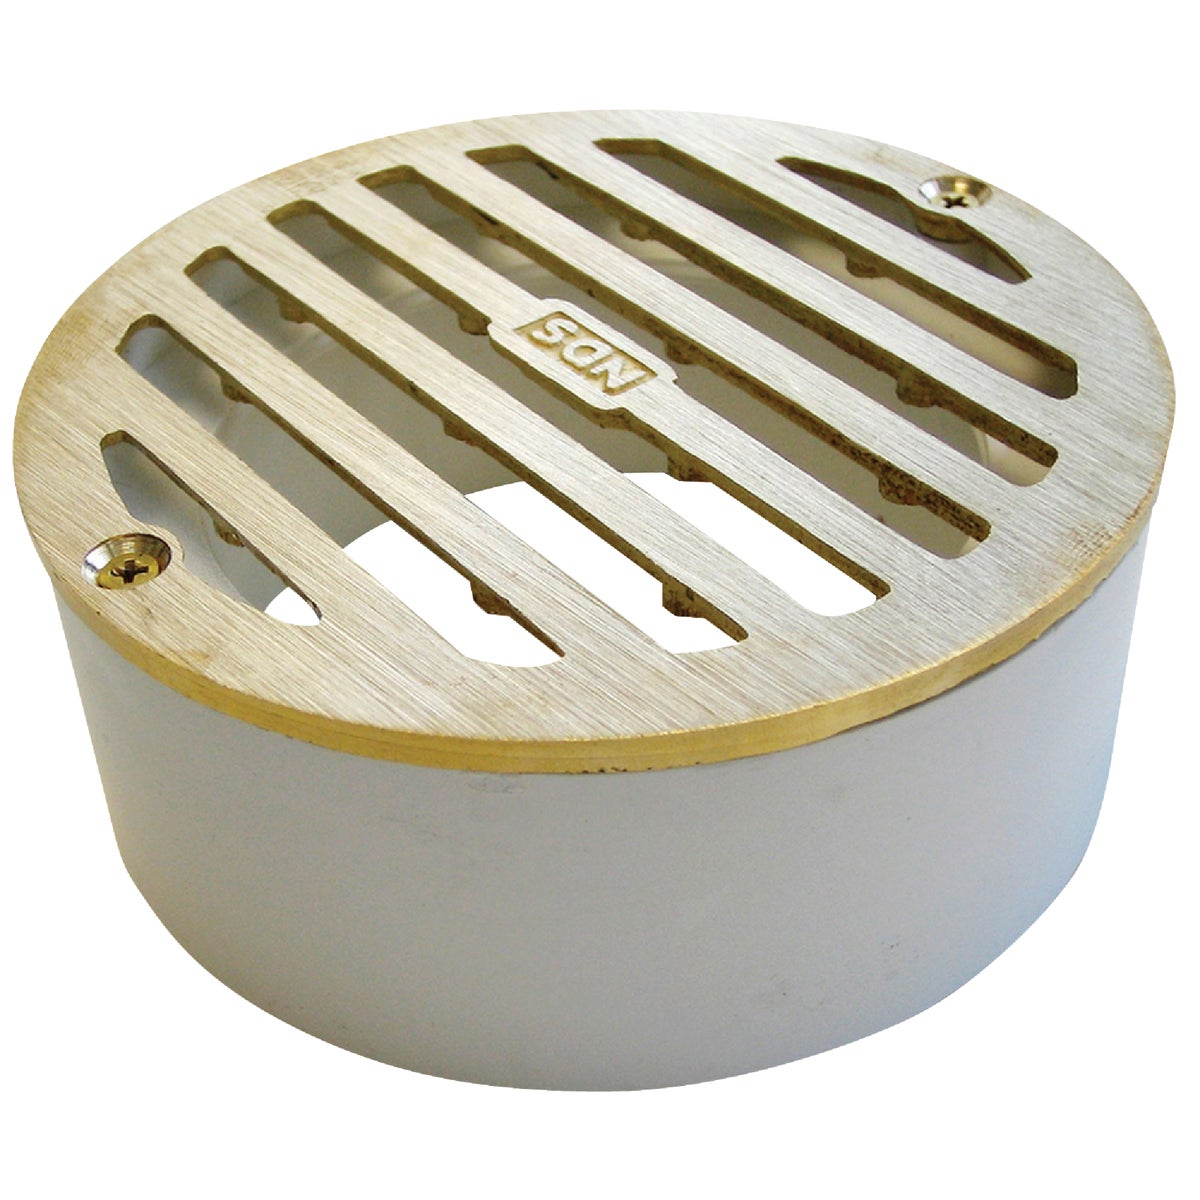 "4"" RND SATIN BRASS GRATE - 910B by National Diversified"